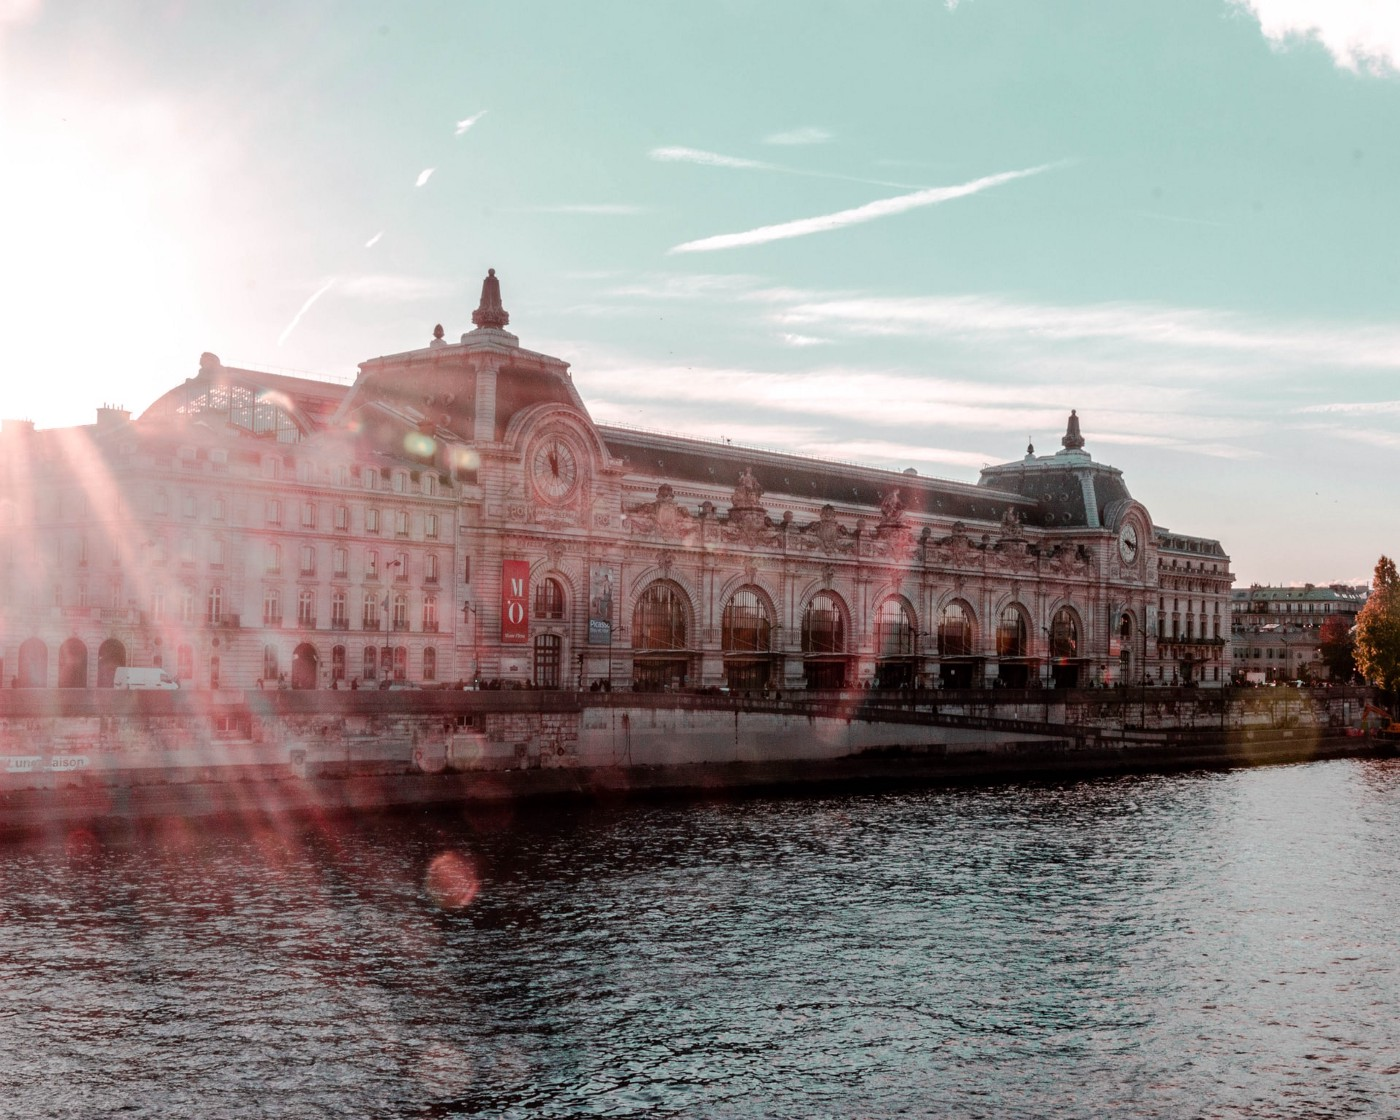 Building of the Orsay museum in Paris near the Seine during sunset.